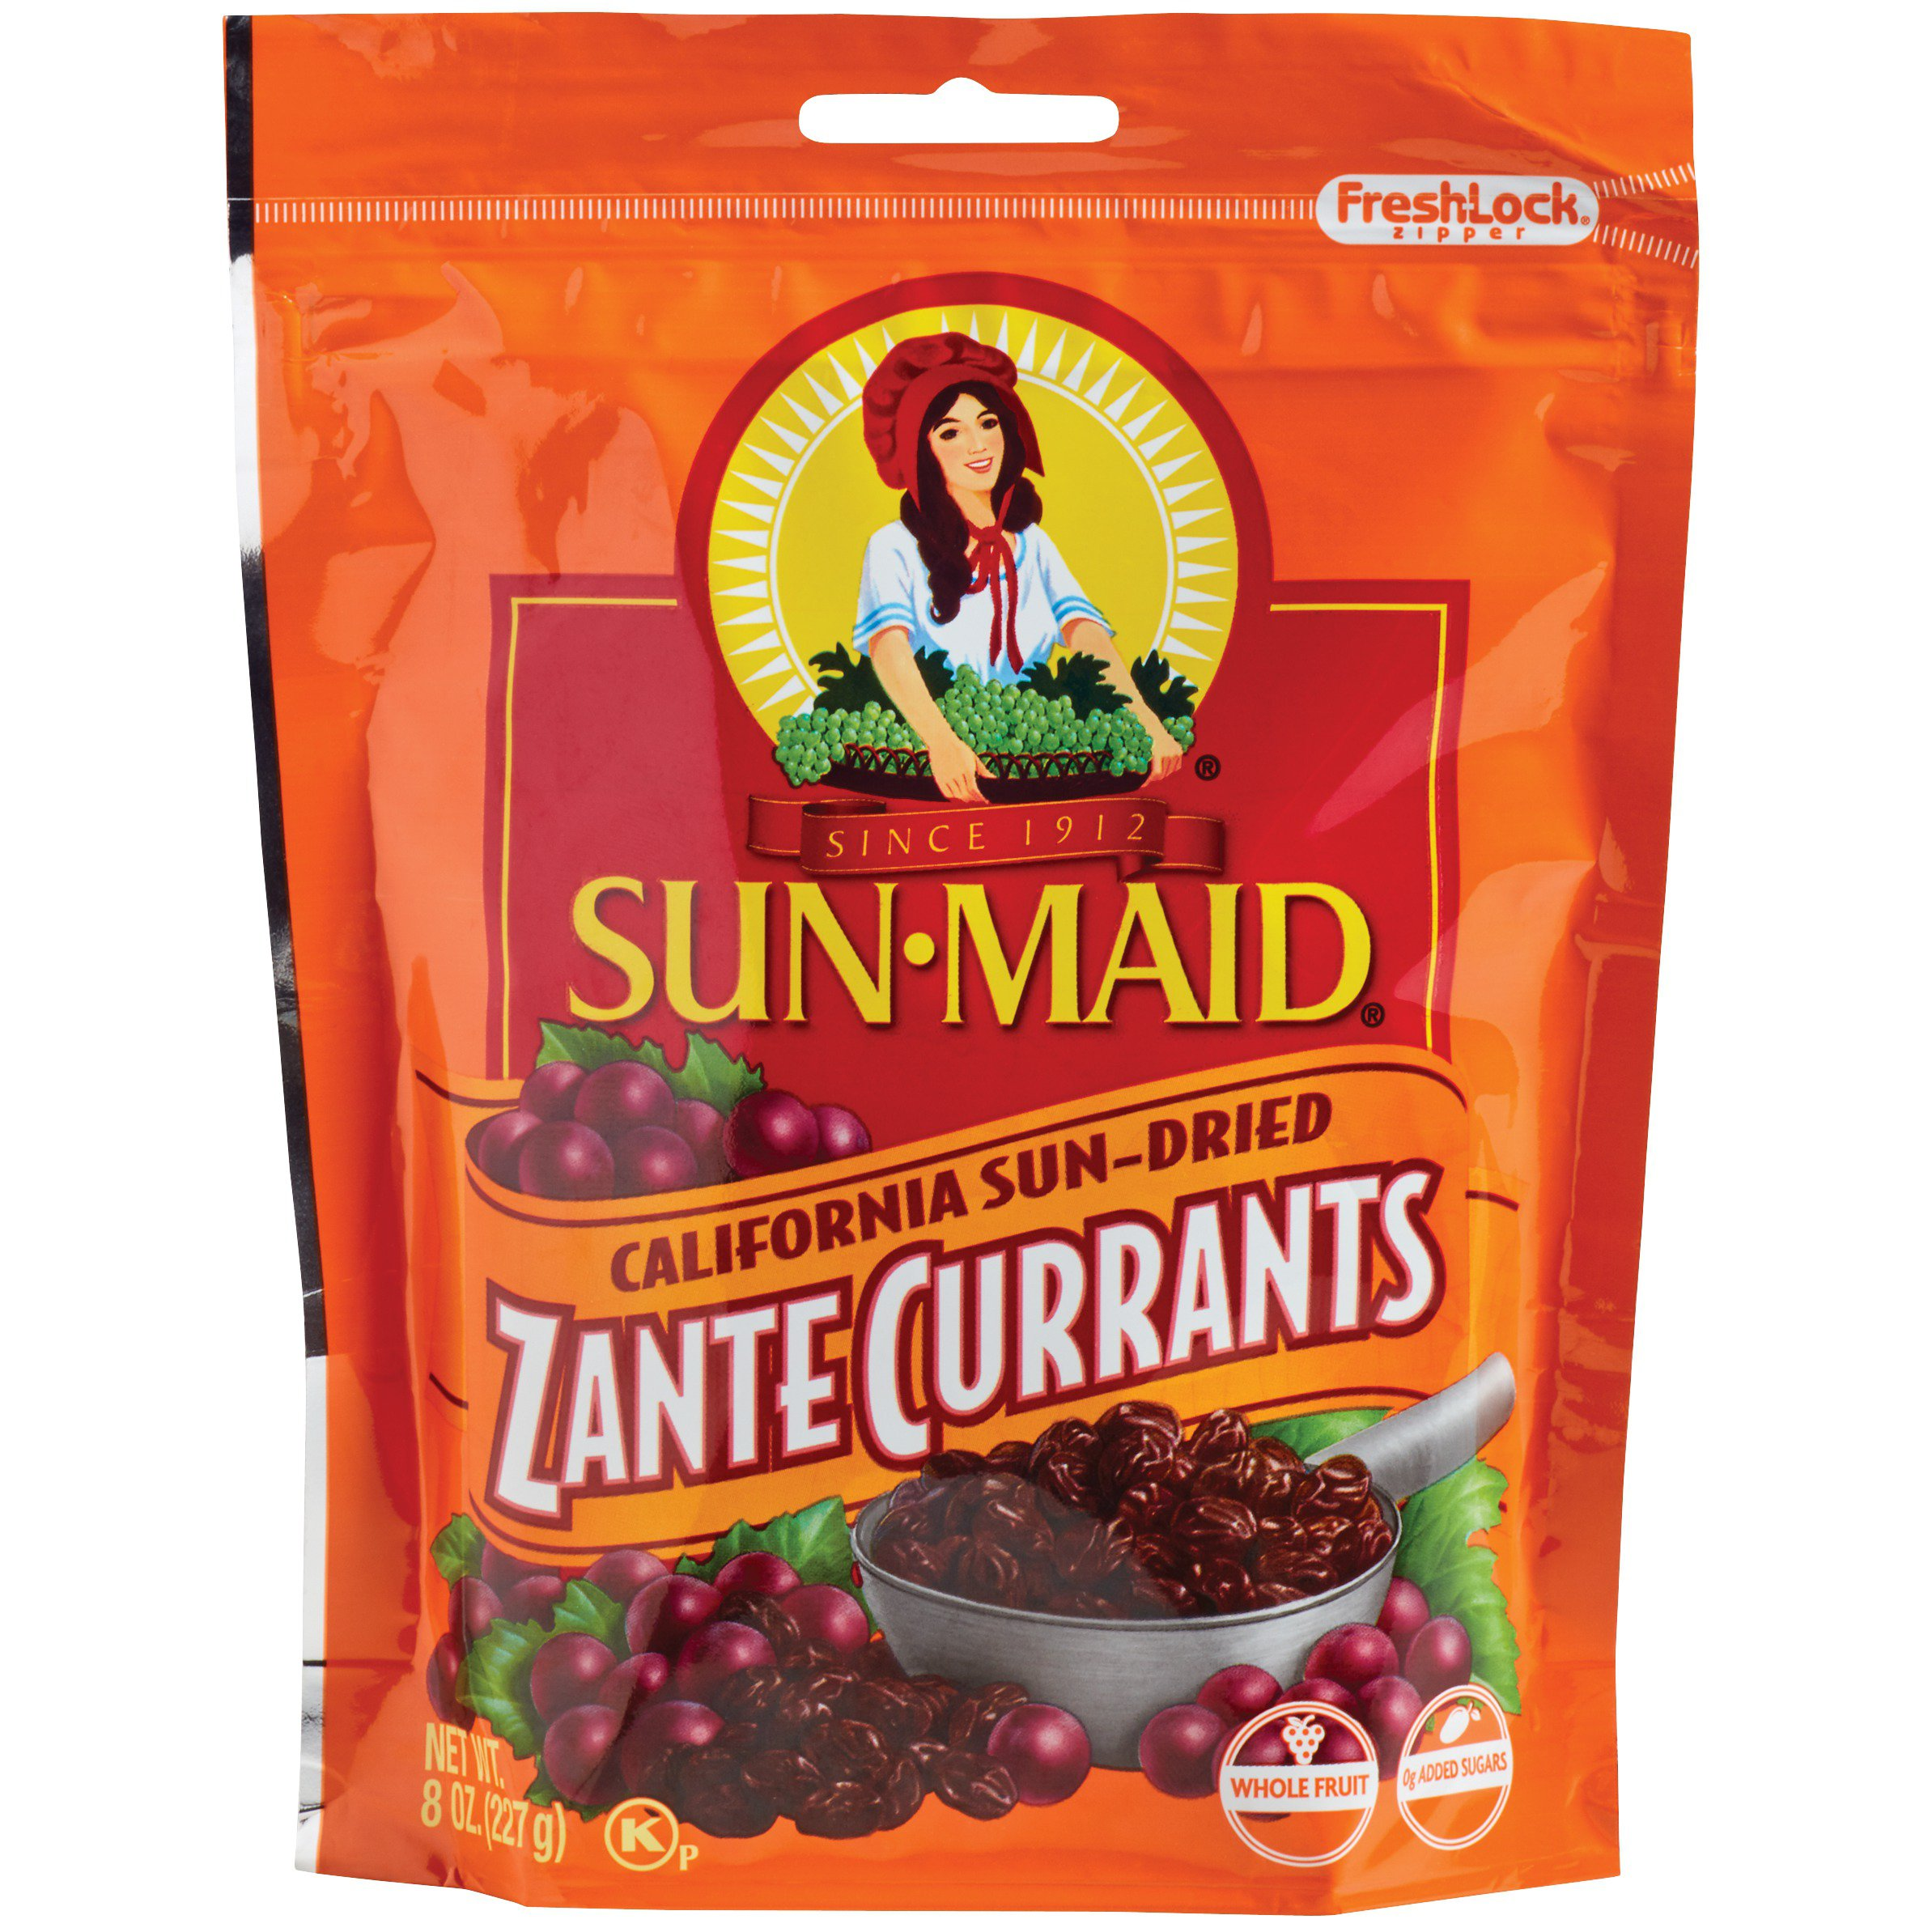 Sun-Maid California Sun-Dried Zante Currants - Shop Fruit ...